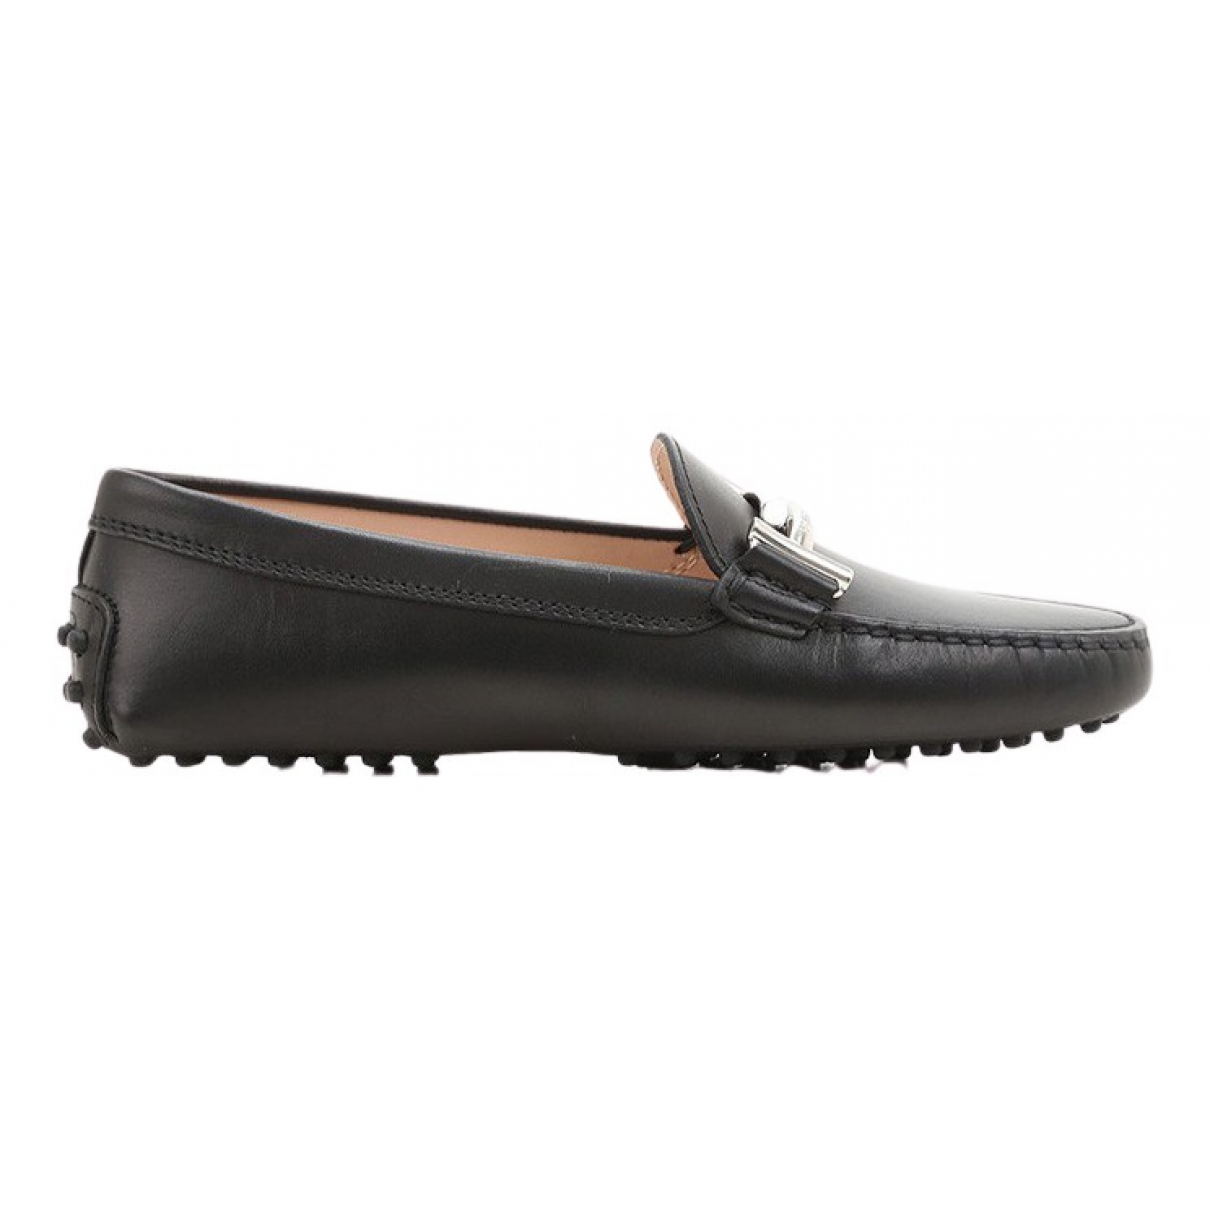 Tod's N Black Leather Flats for Women 38 EU